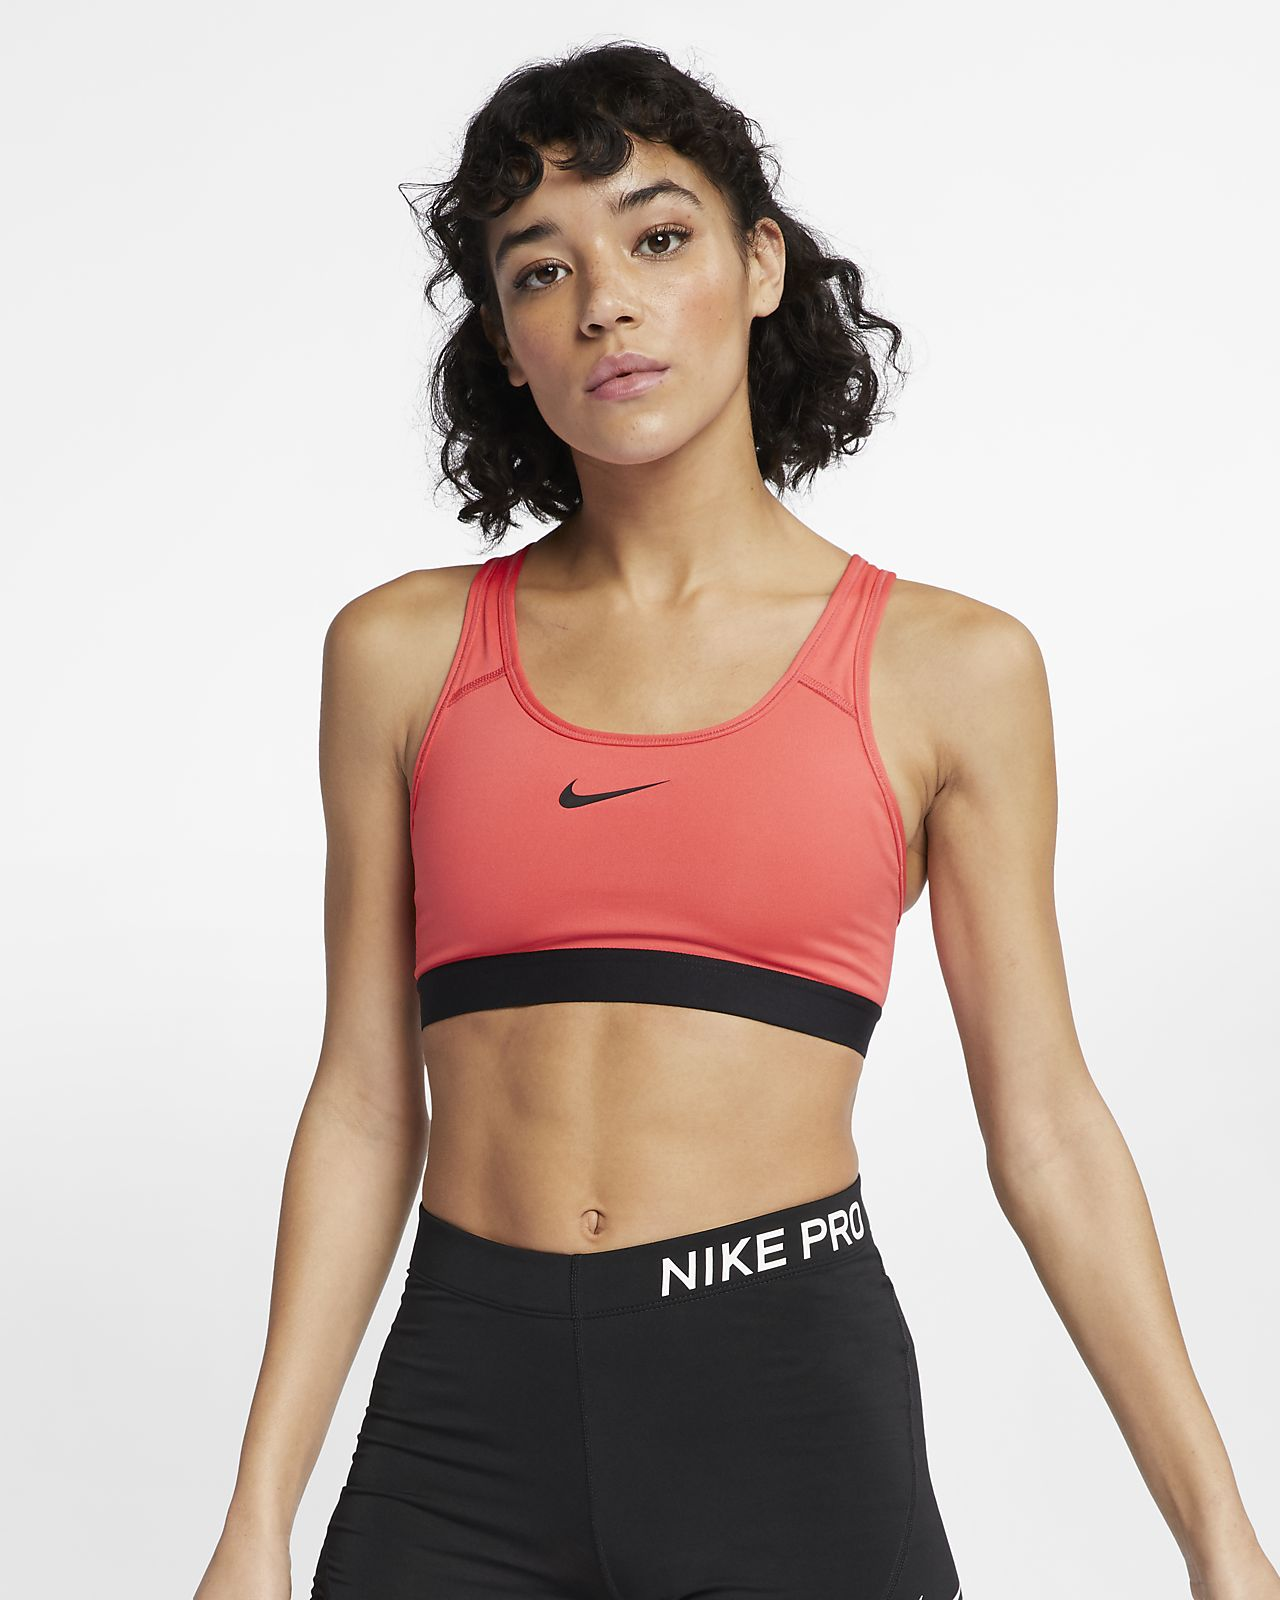 e45d1f67a7712 Nike Classic Padded Women s Medium-Support Sports Bra. Nike.com